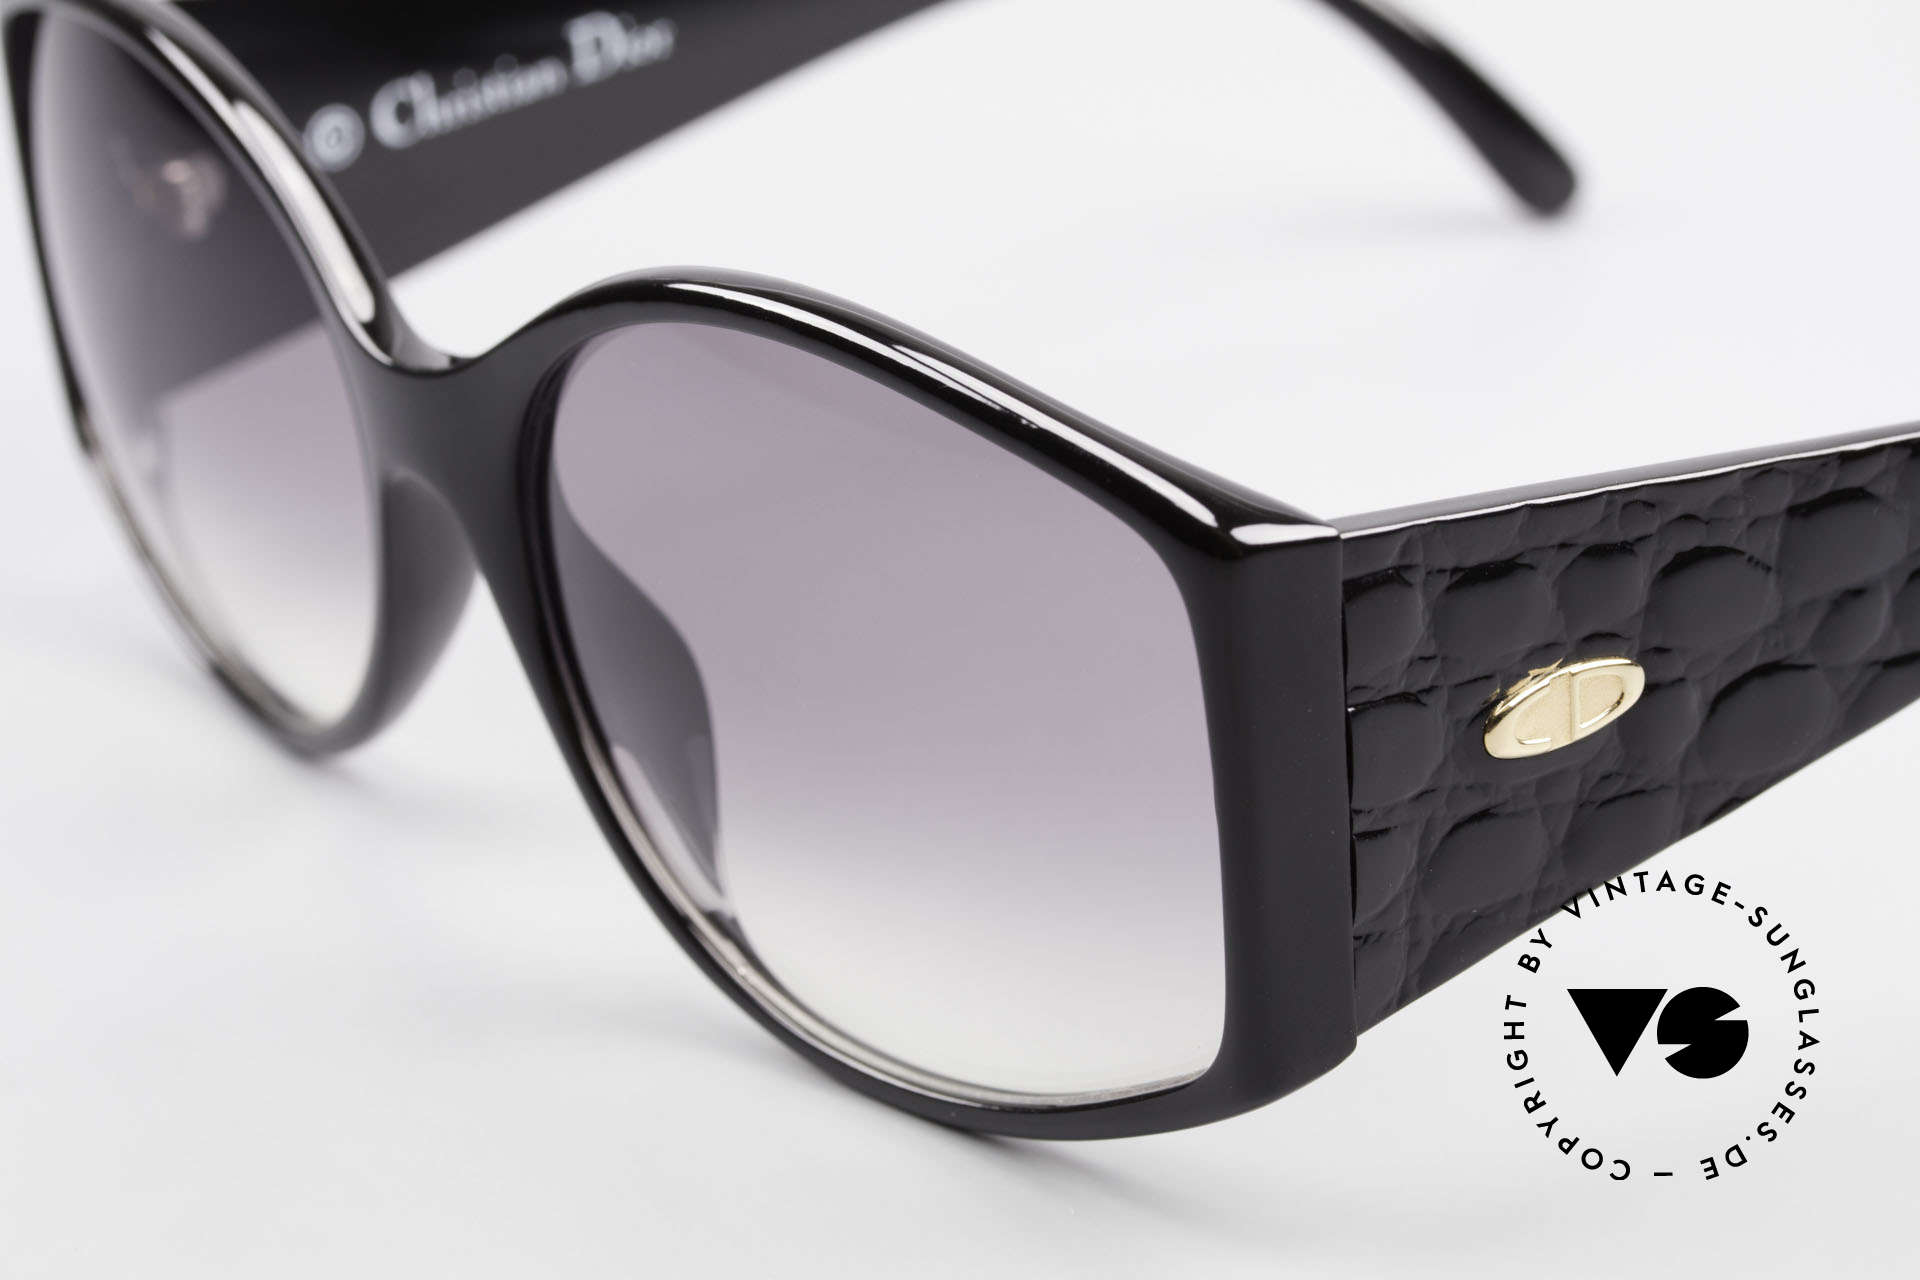 Christian Dior 2435 Designer Sunglasses Ladies 80's, never worn (like all our C. Dior designer shades), Made for Women